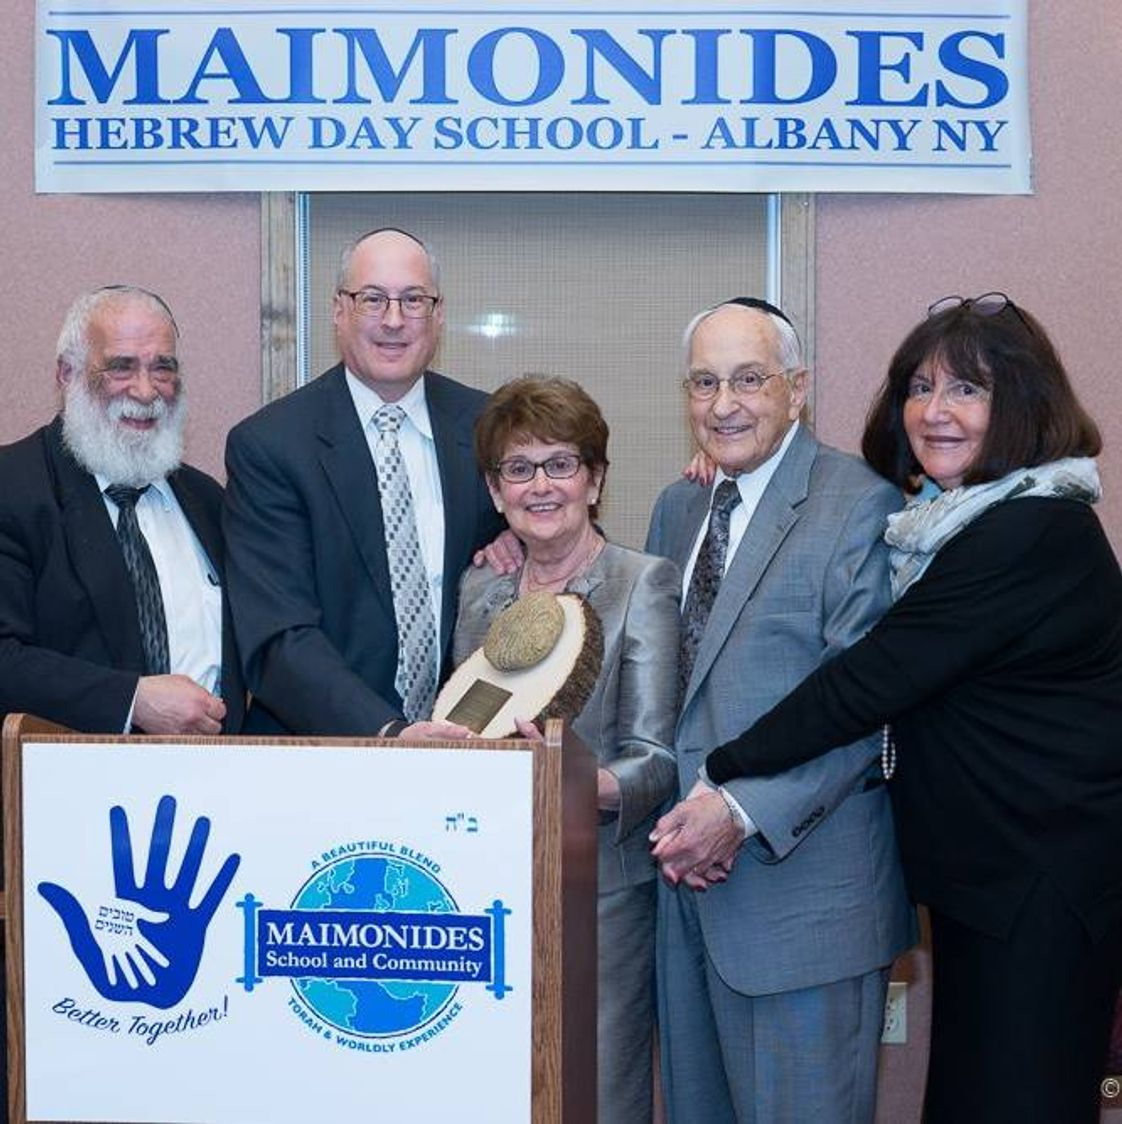 Maimonides Hebrew Day School Photo